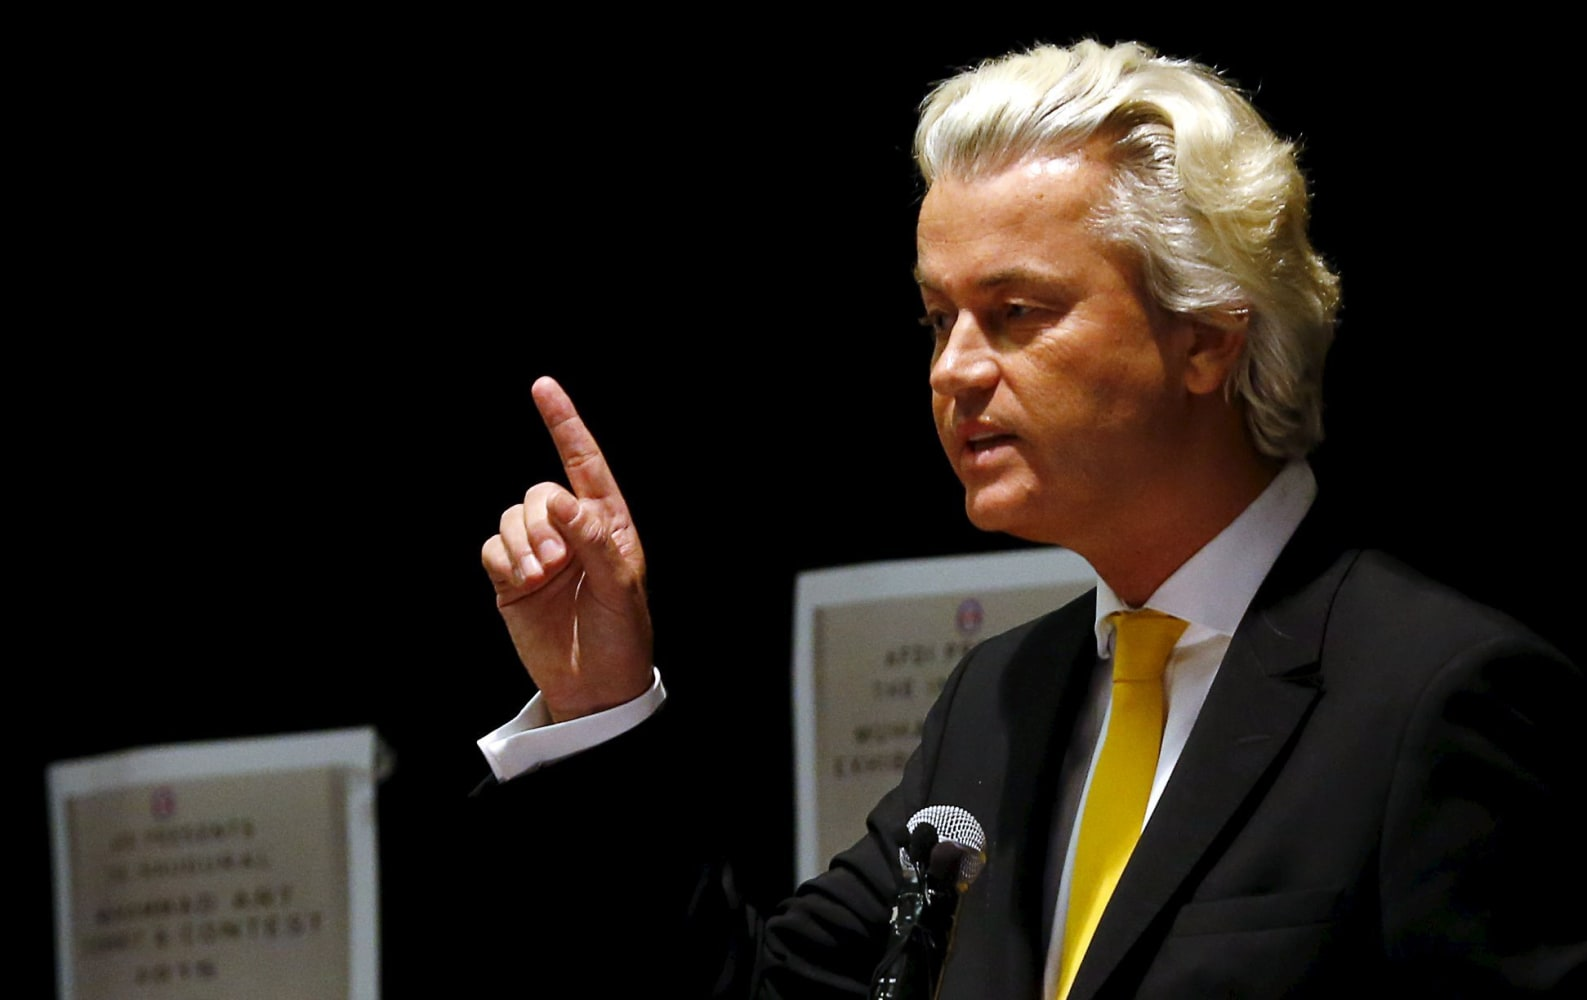 Don't vote for 'fascists' in Dutch election